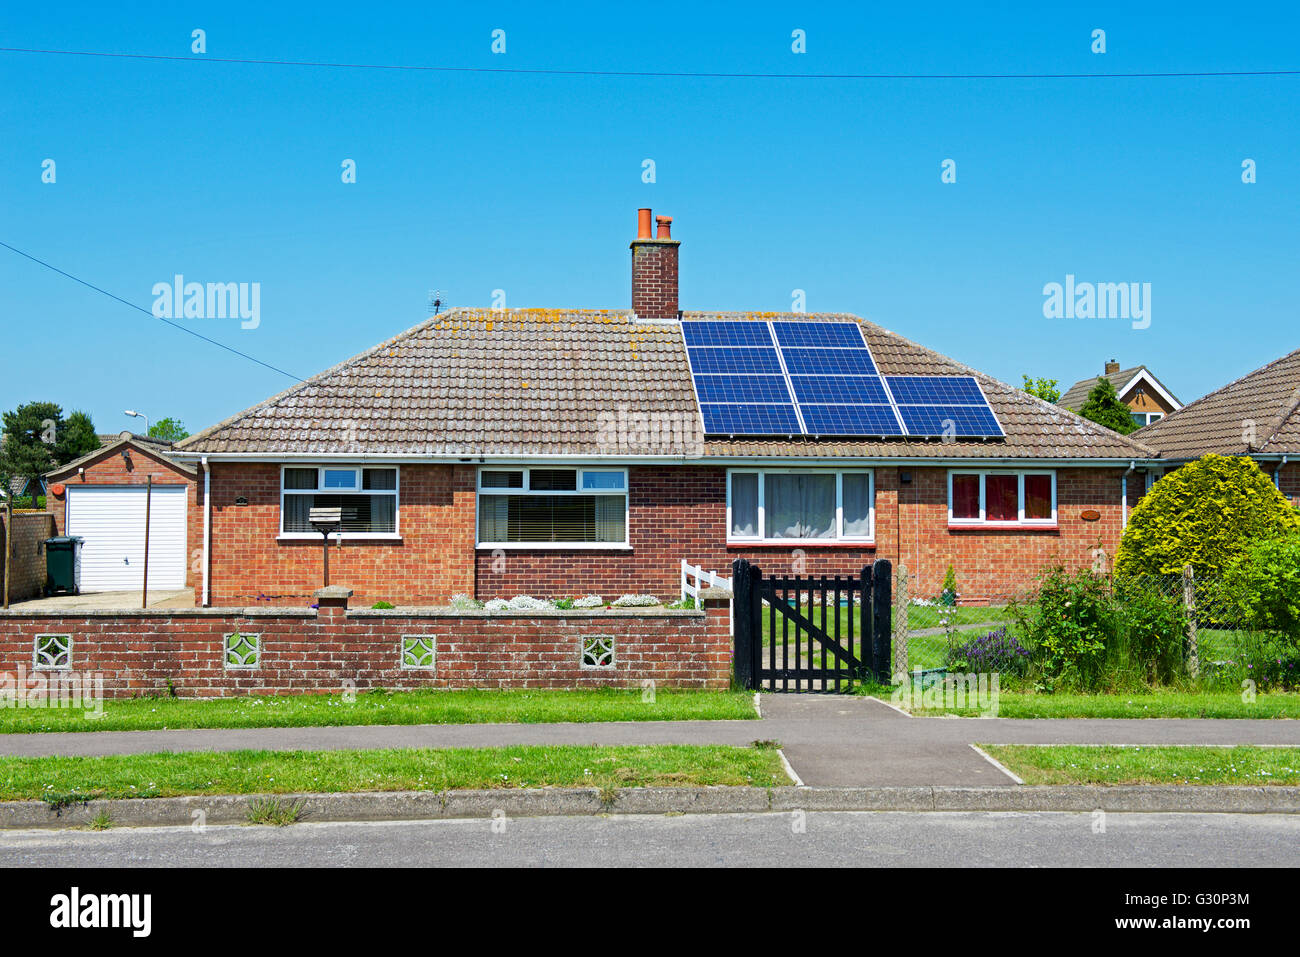 Semi-detached bungalow, half the roof with solar panels, half without, England UK - Stock Image